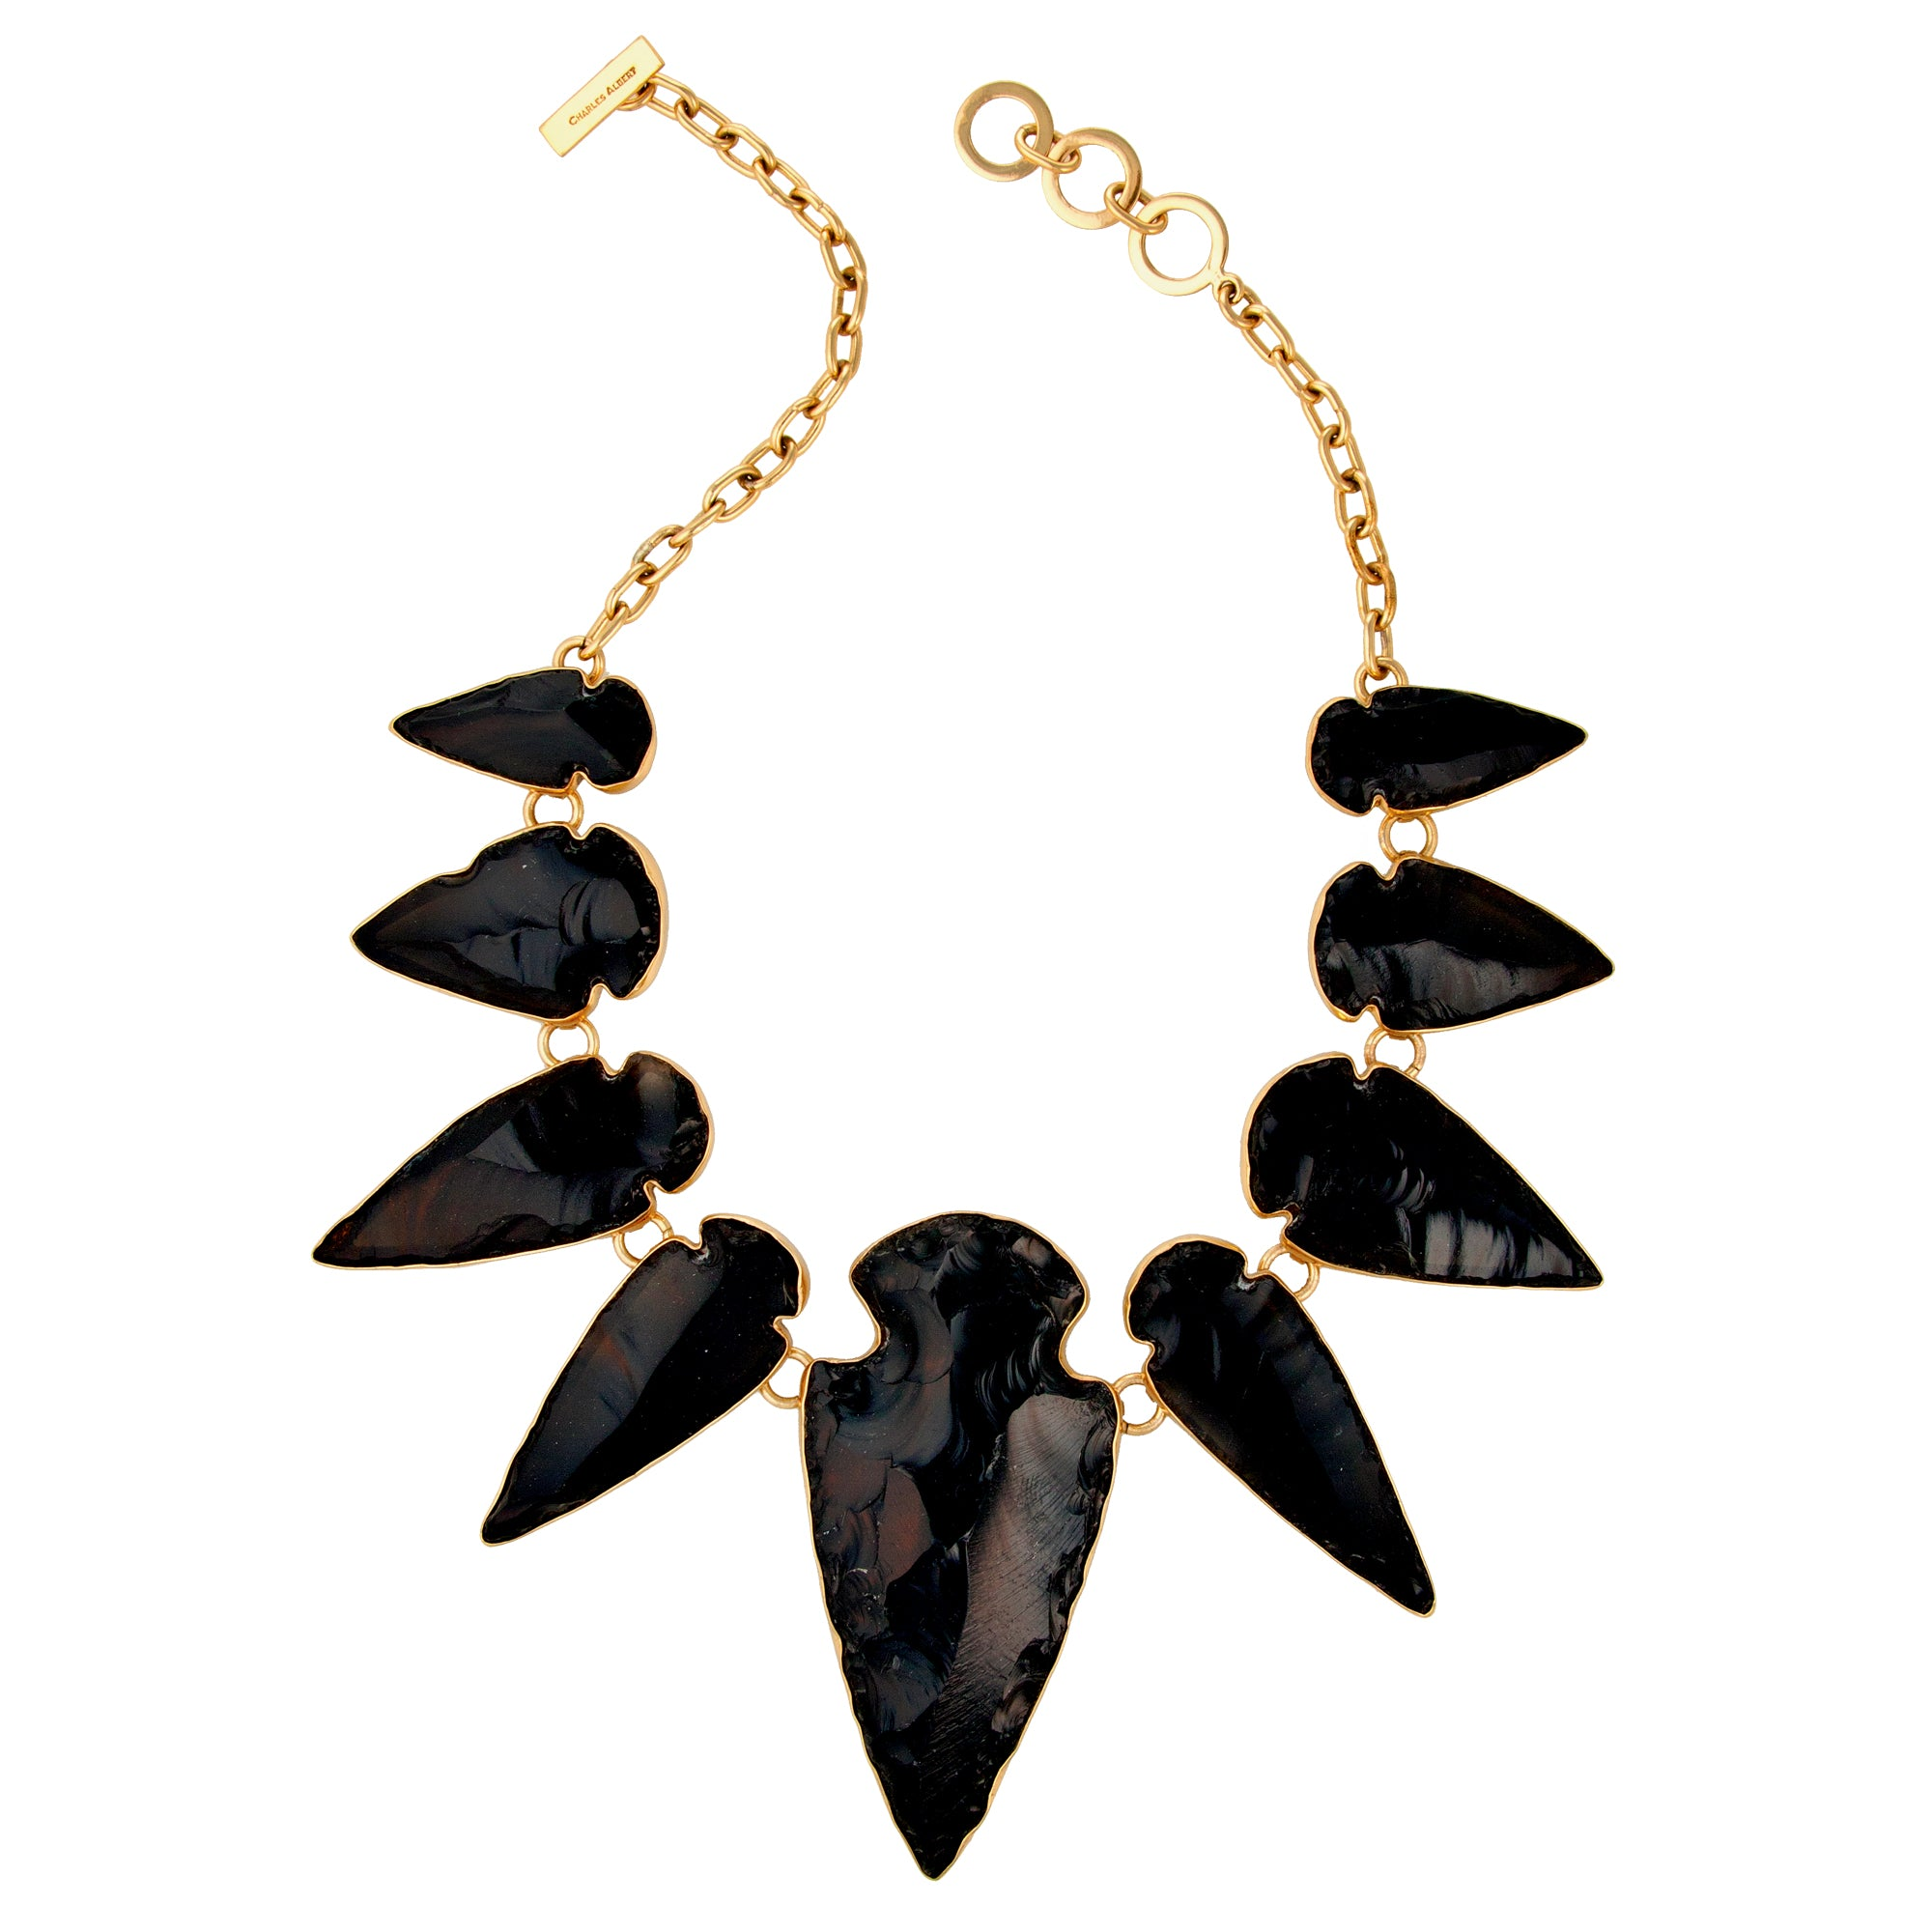 Alchemia Obsidian Arrowhead Necklace | Charles Albert Jewelry